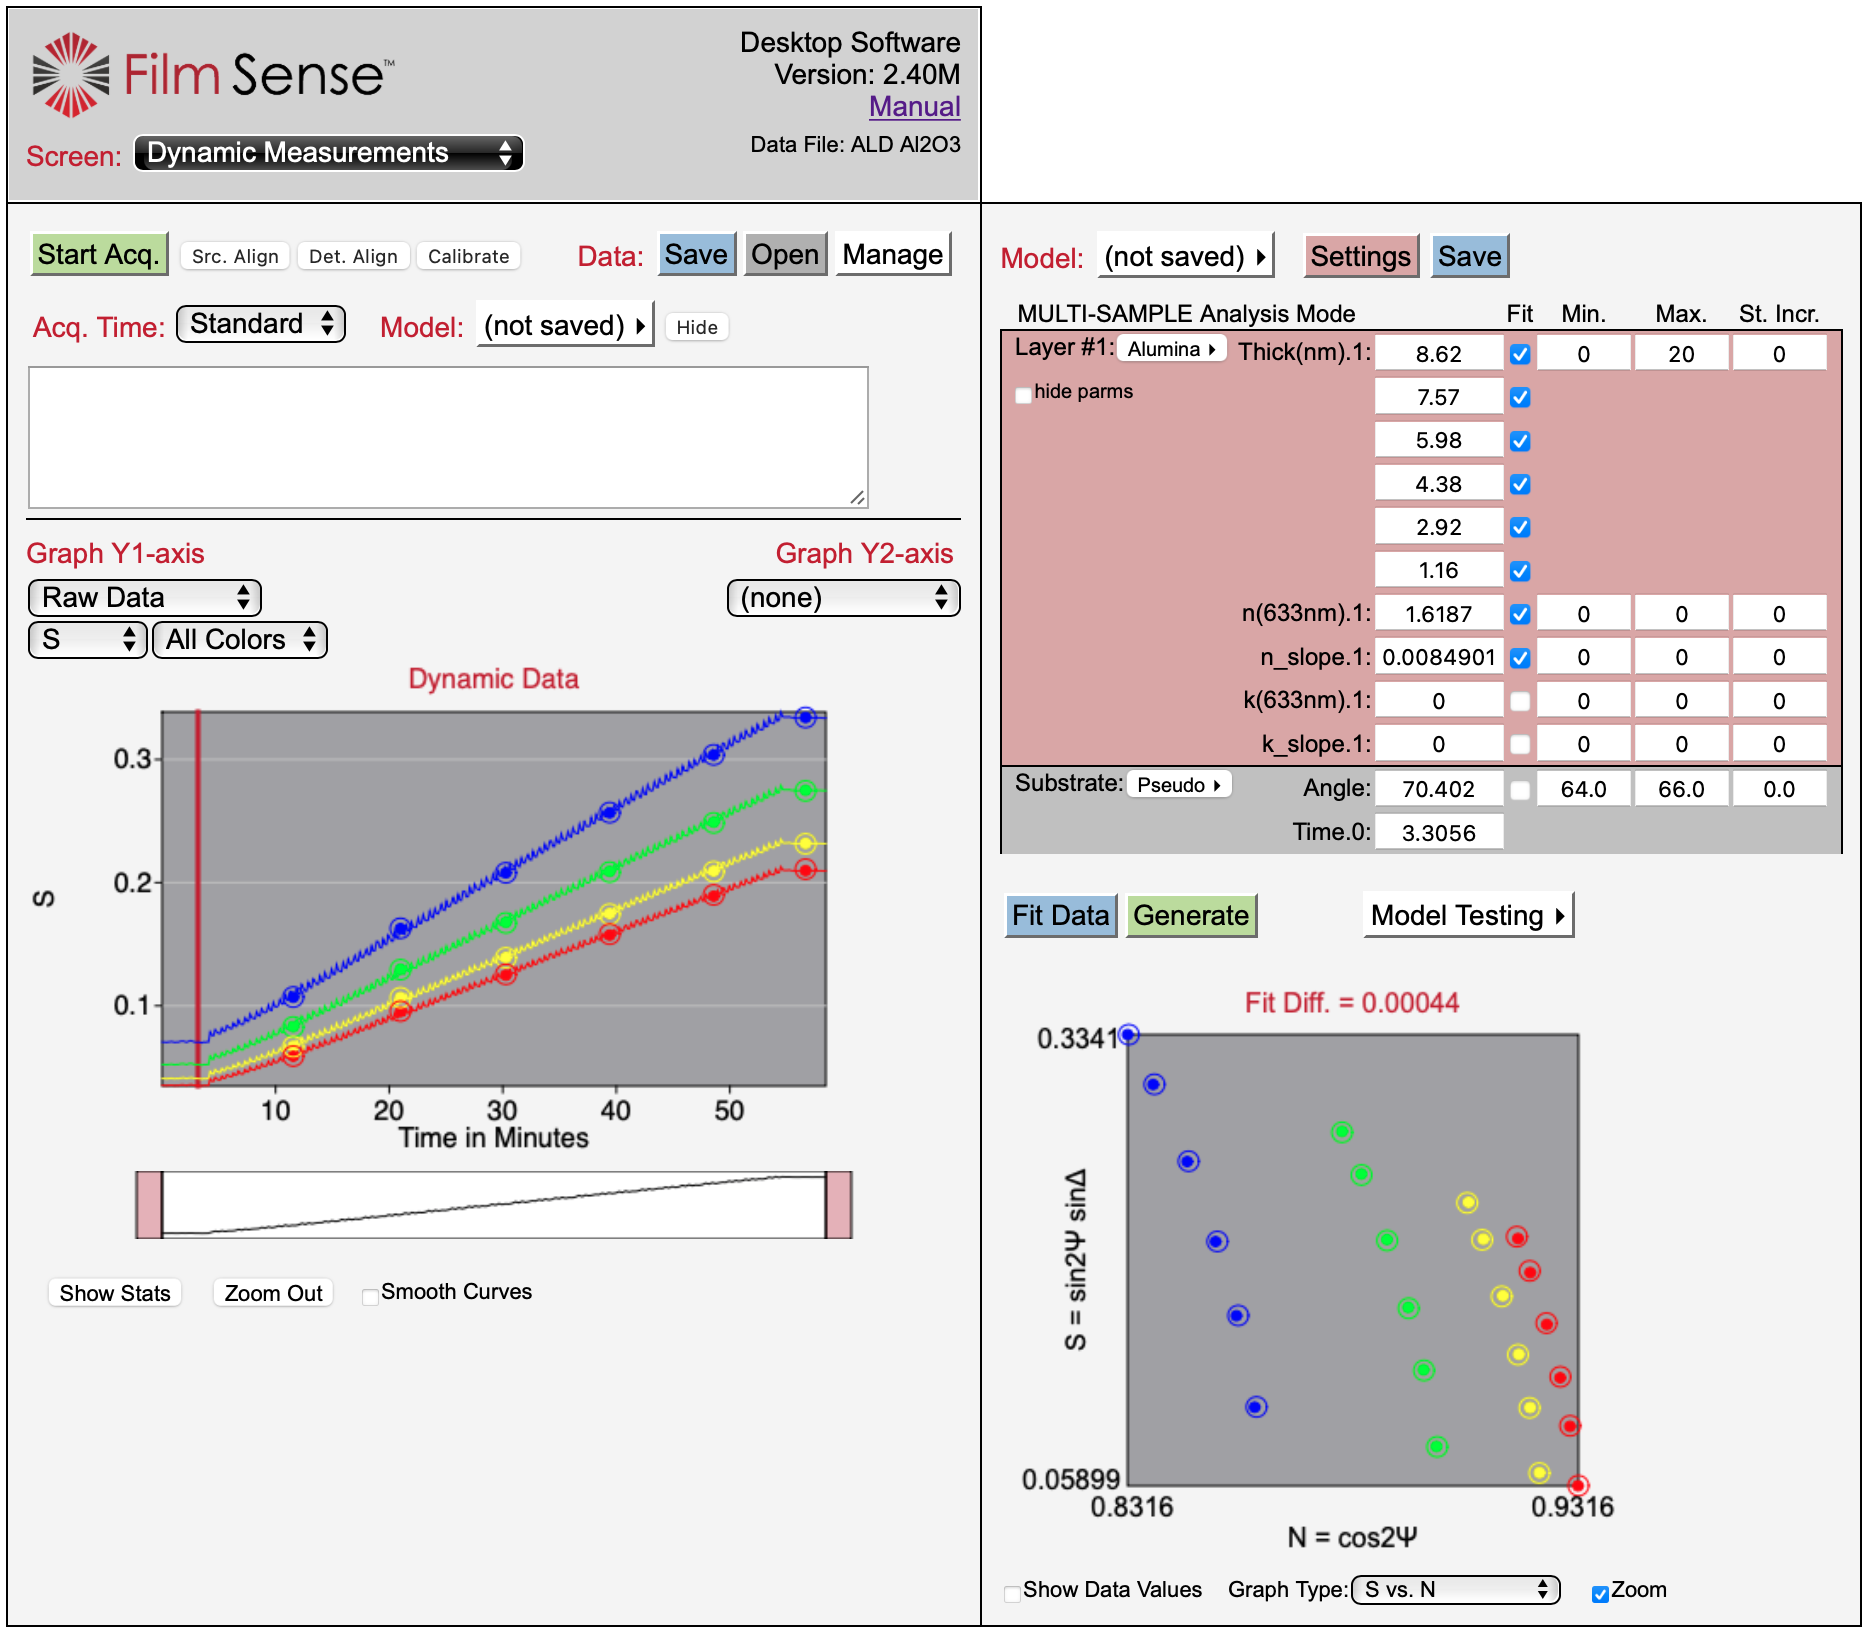 Here is a screenshot of Film Sense software monitoring thin film growth from in situ measurements. The screen on the right shows the analysis model used for measuring these films.